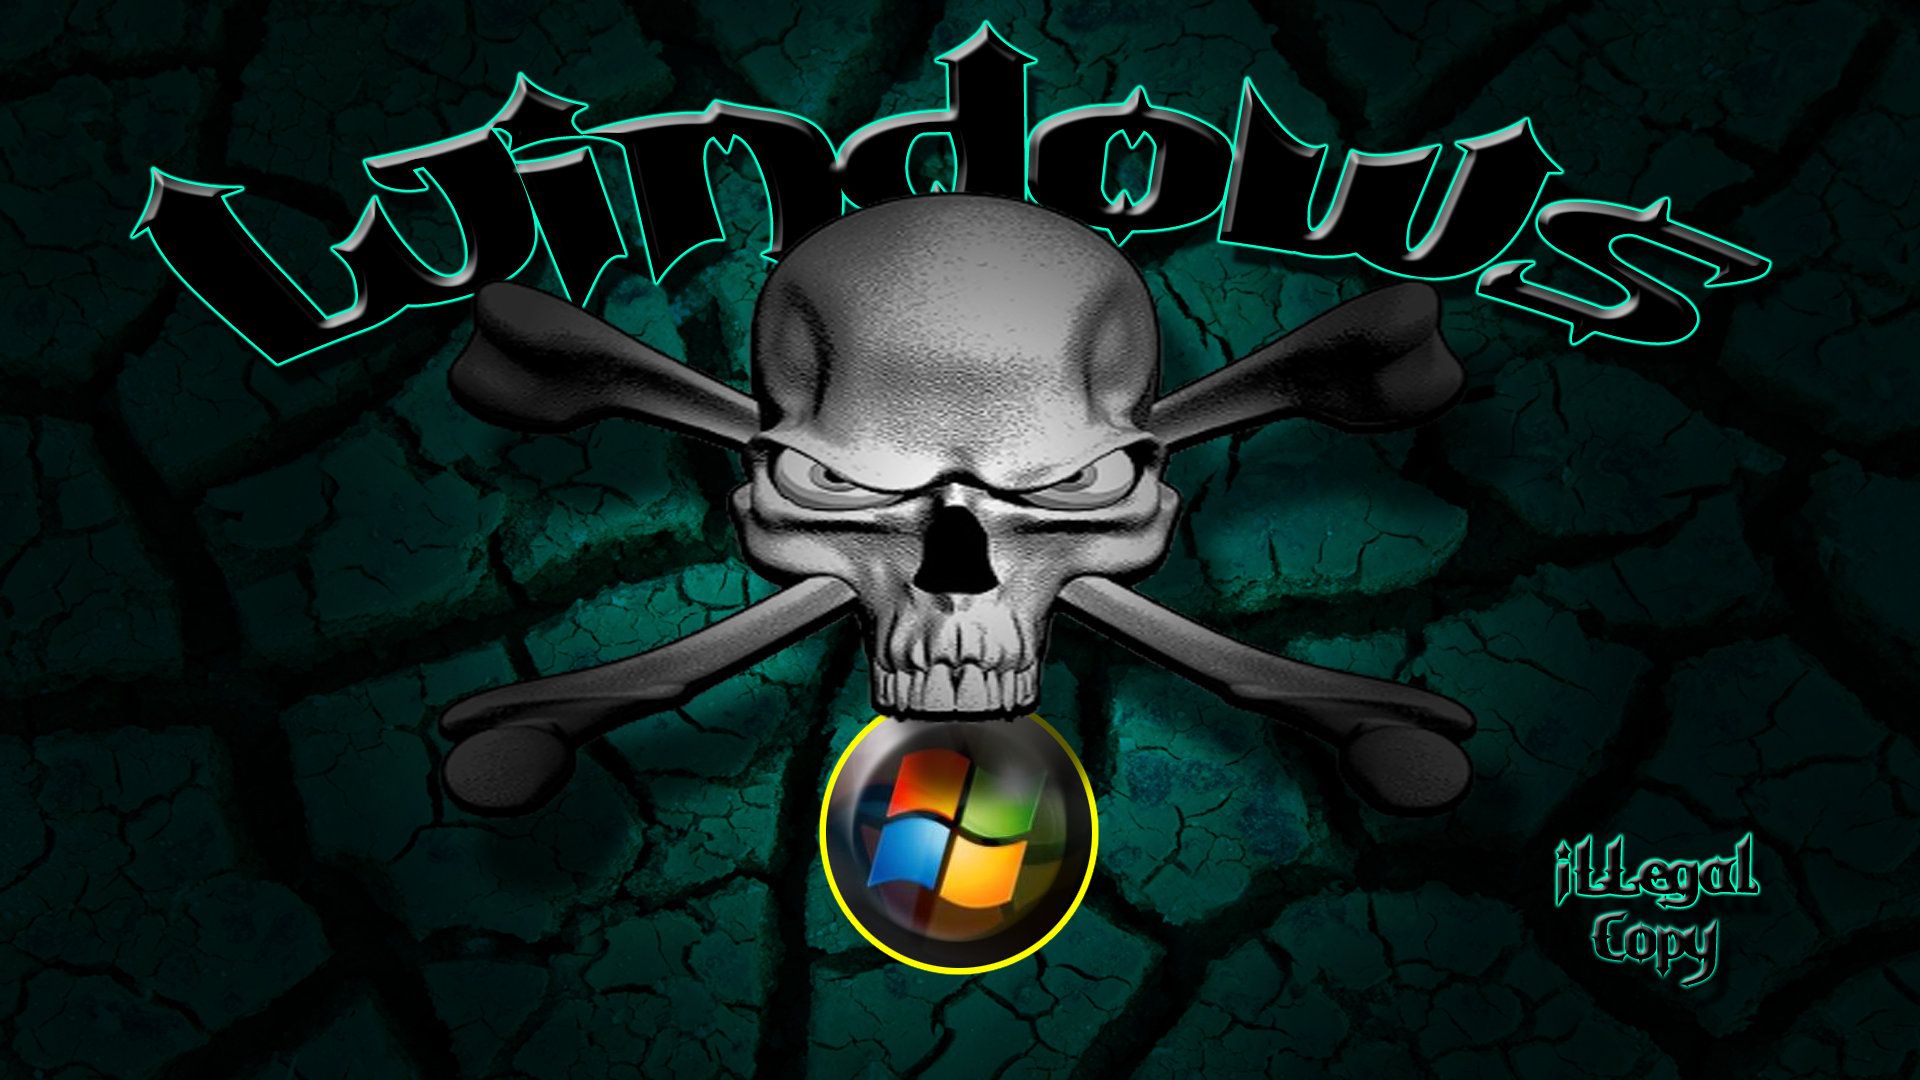 skull wallpaper for windows 7 - photo #5